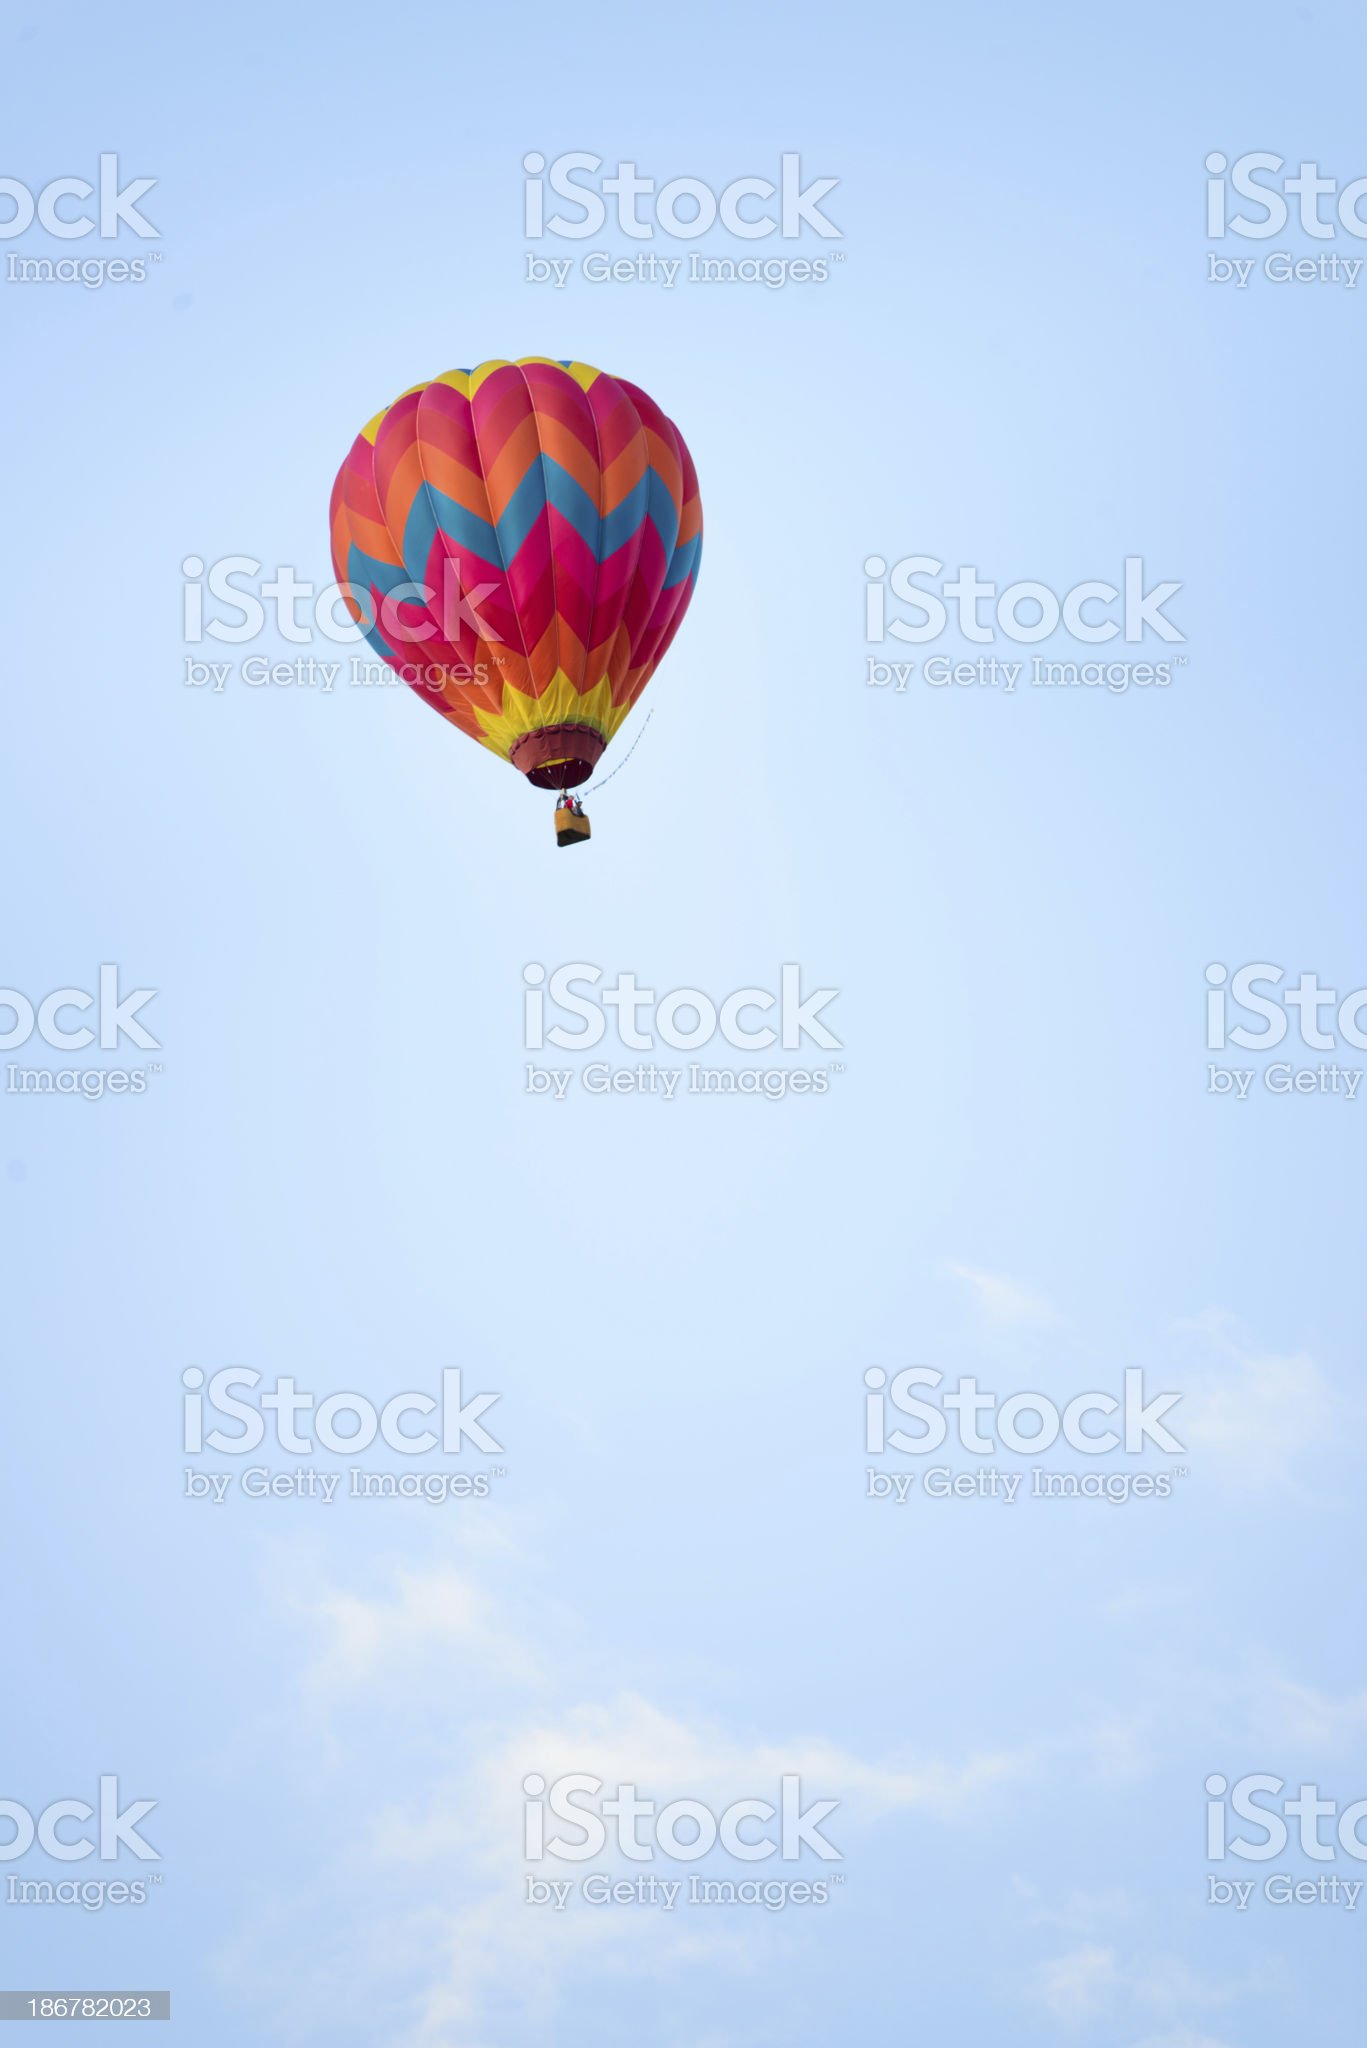 Distant Colorful Hot Air Balloon royalty-free stock photo